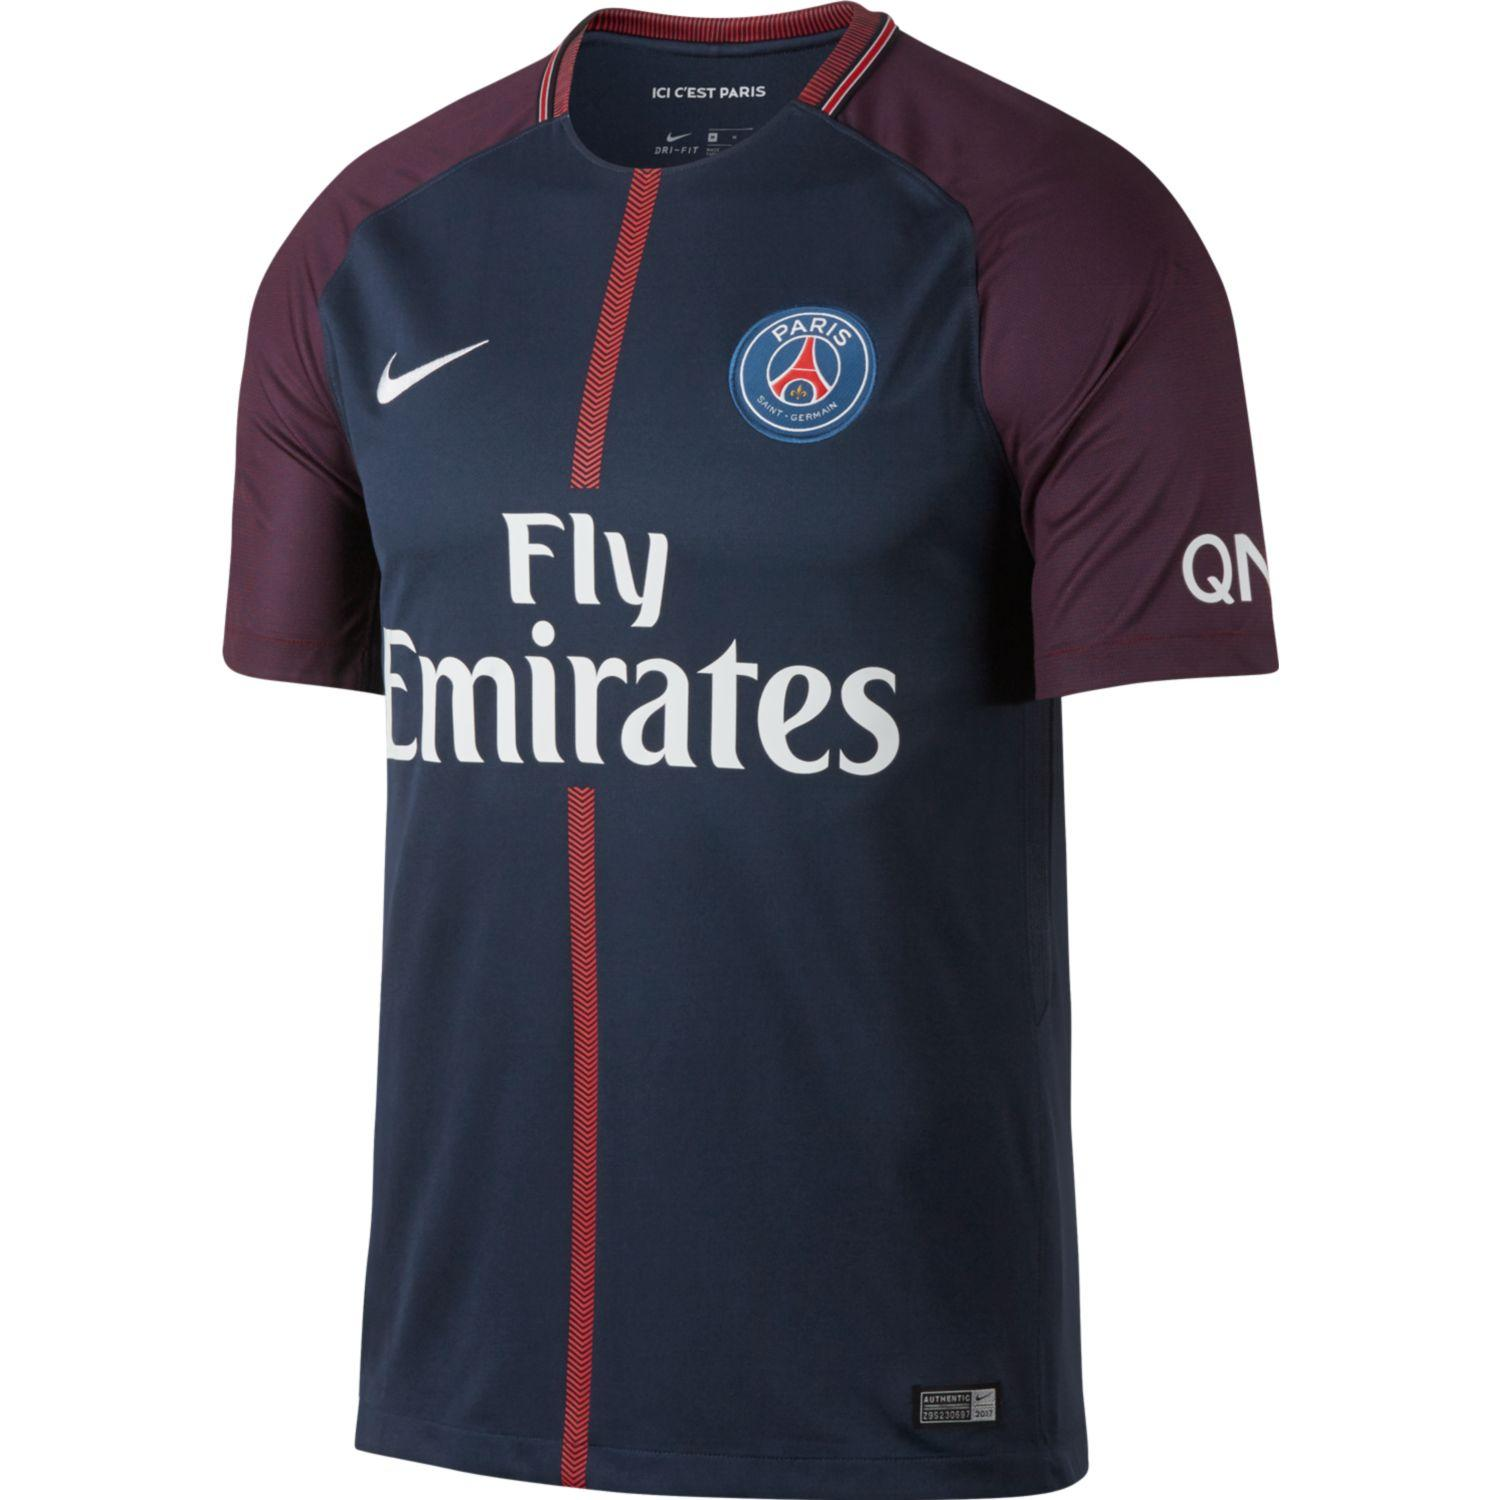 Nike Maglia Gara Home Paris Saint Germain   17/18